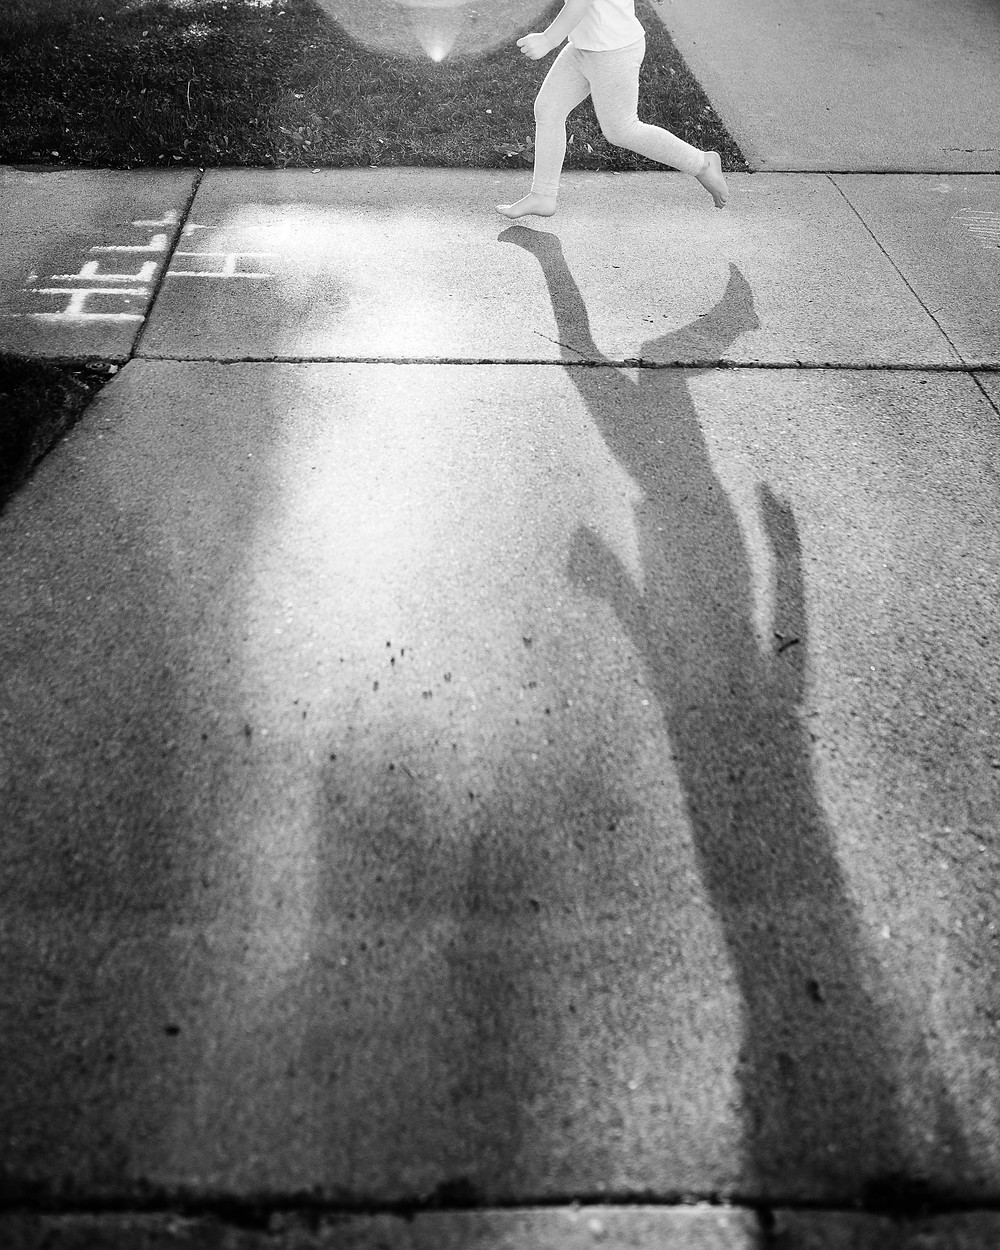 black and white photograph of a little girl skipping along a sidewalk with her shadow